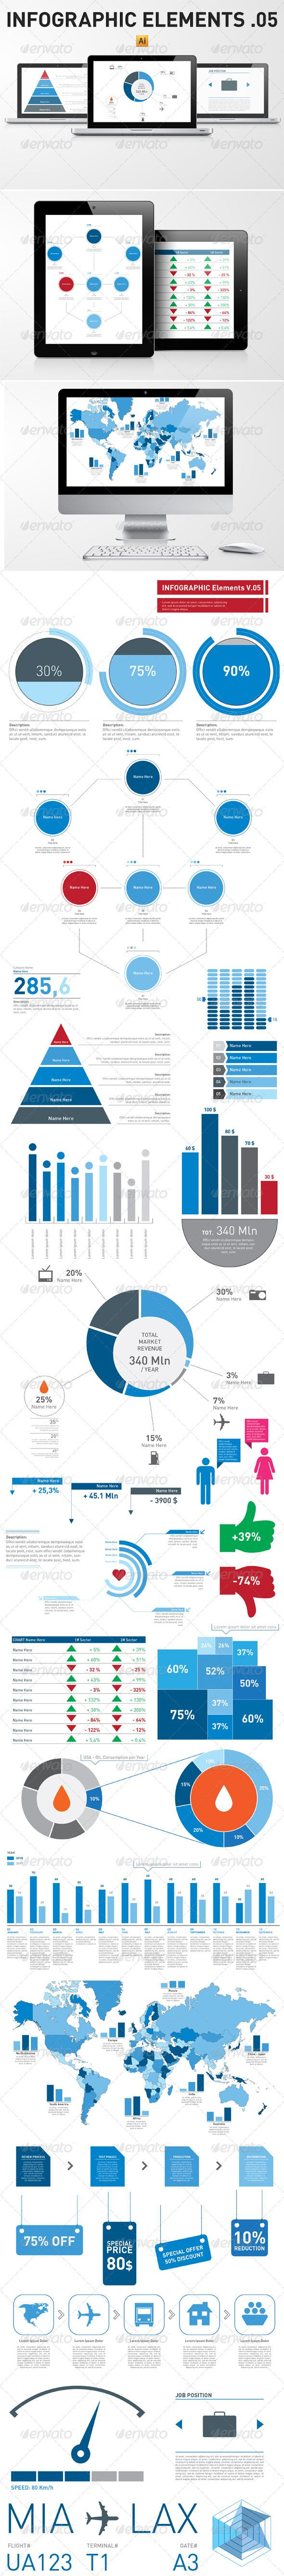 Infographic Elements Template Pack 05 - Infographics